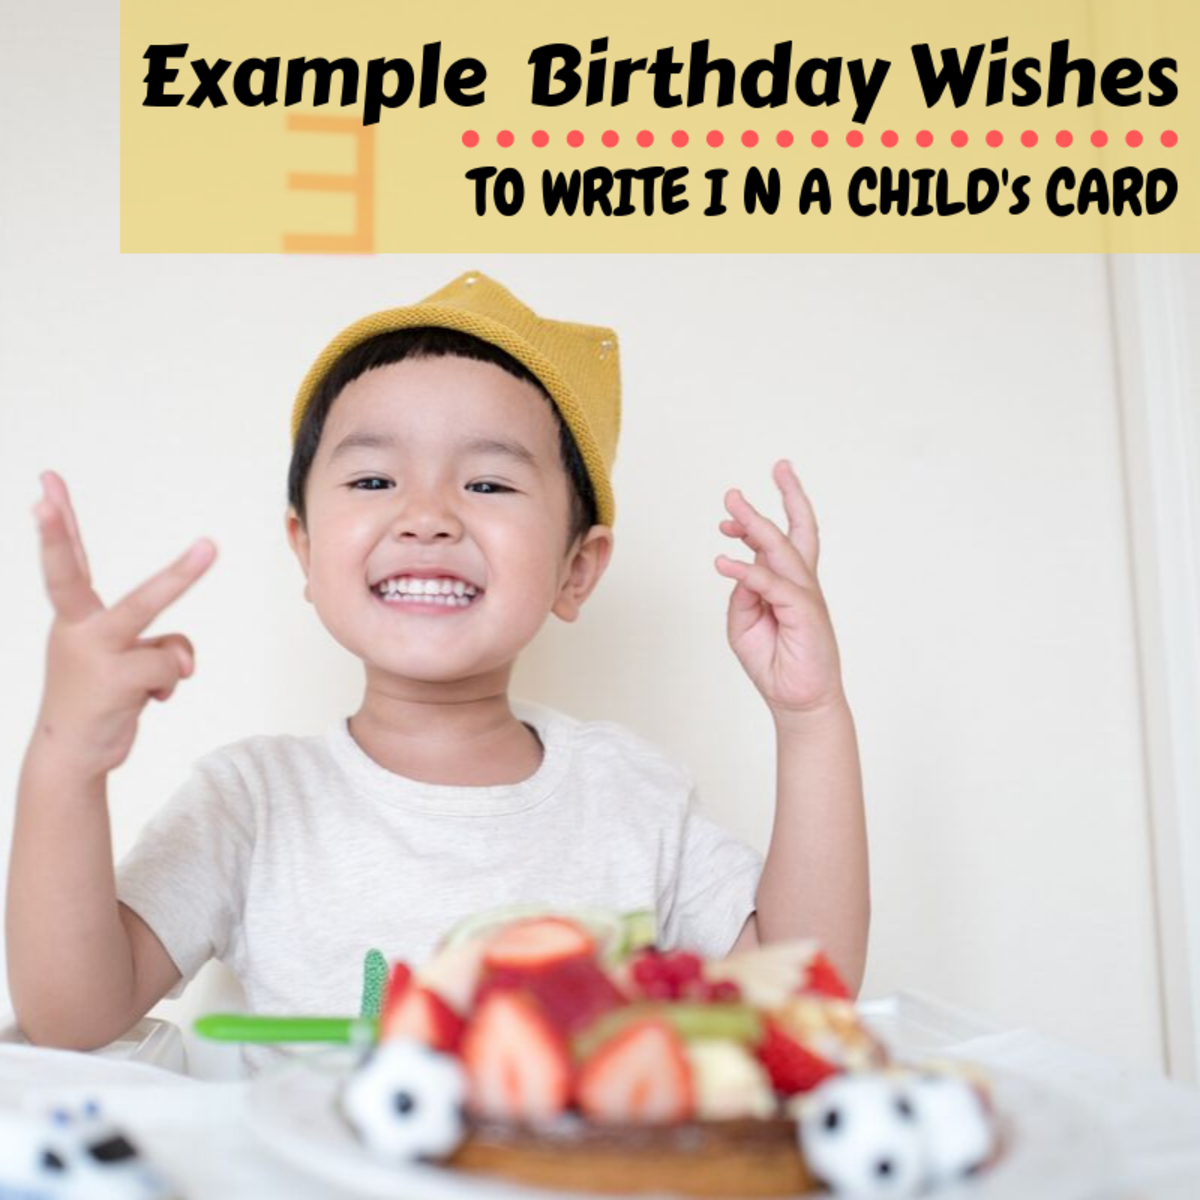 Birthday Wishes to Write in a Kid's Birthday Card